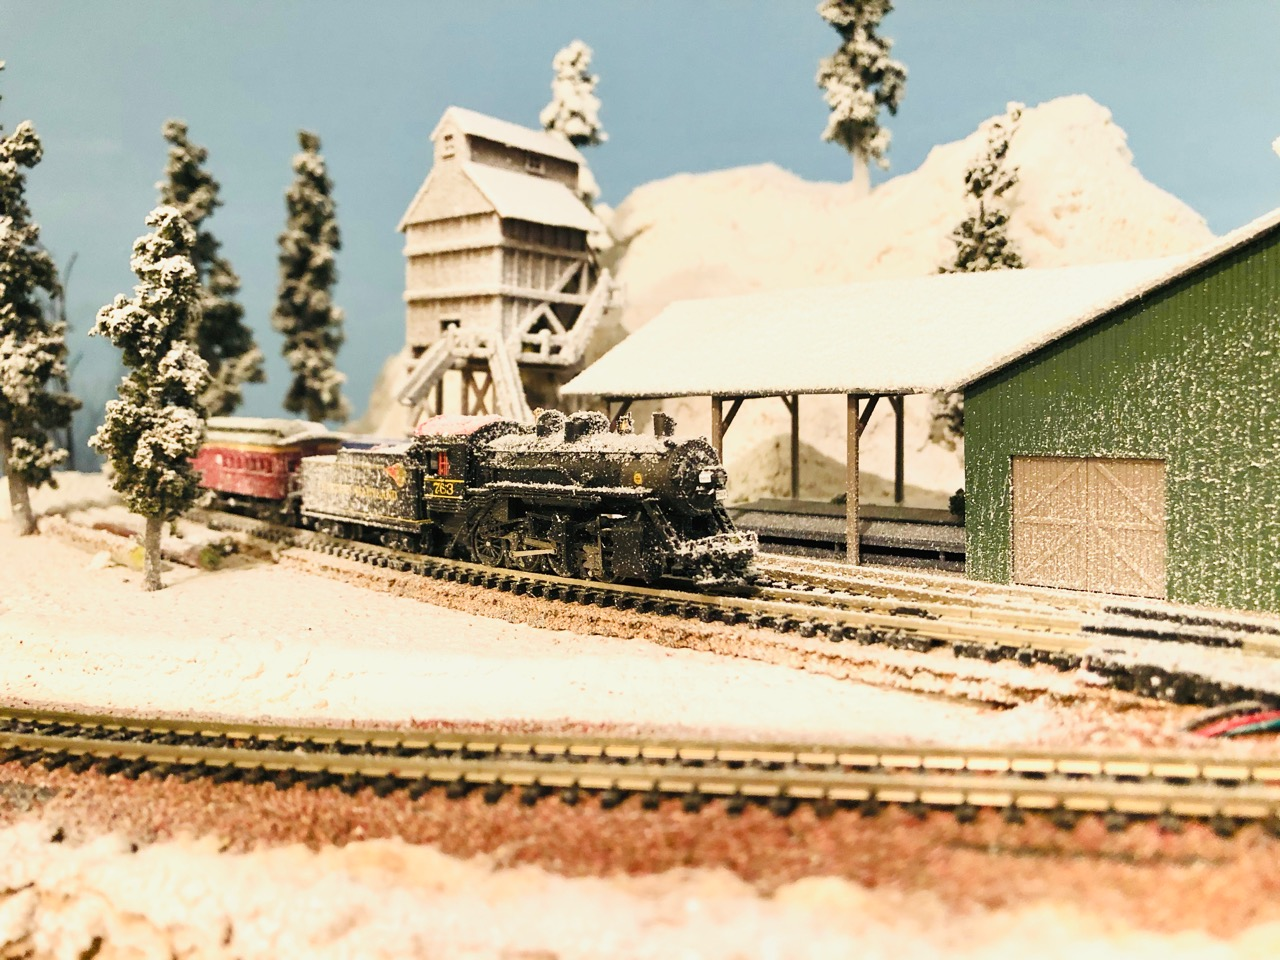 Building Your Model Railroad cover image